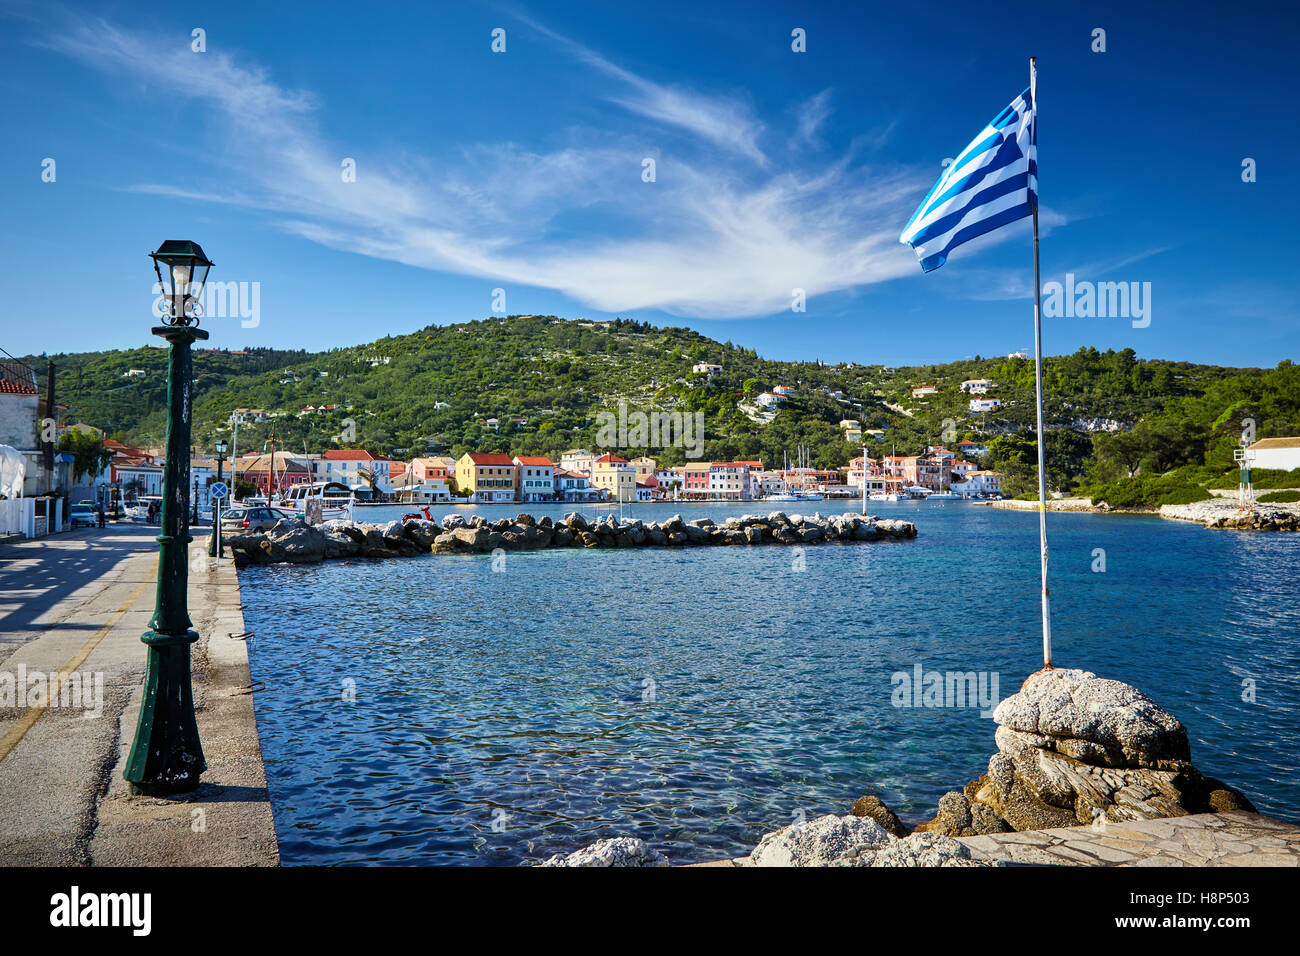 Greek flag at the port. Islands of Paxos Greece. - Stock Image